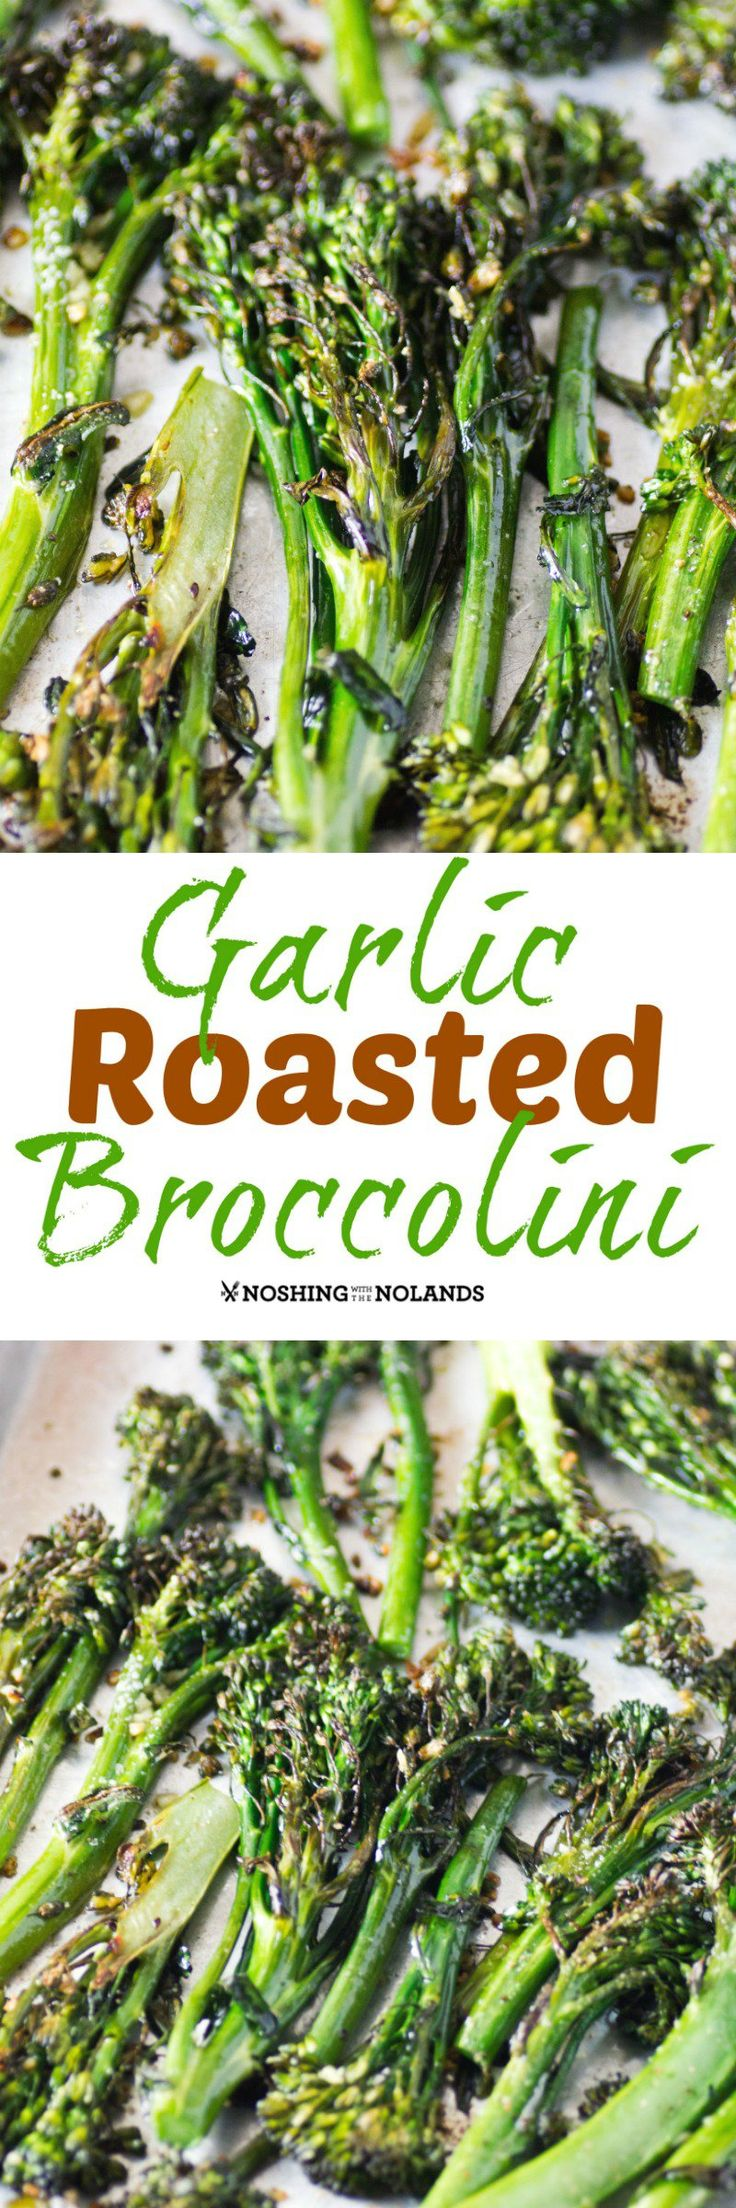 Garlic Roasted Broccolini  makes for the best side with it's crispy edges and fantastic flavor!